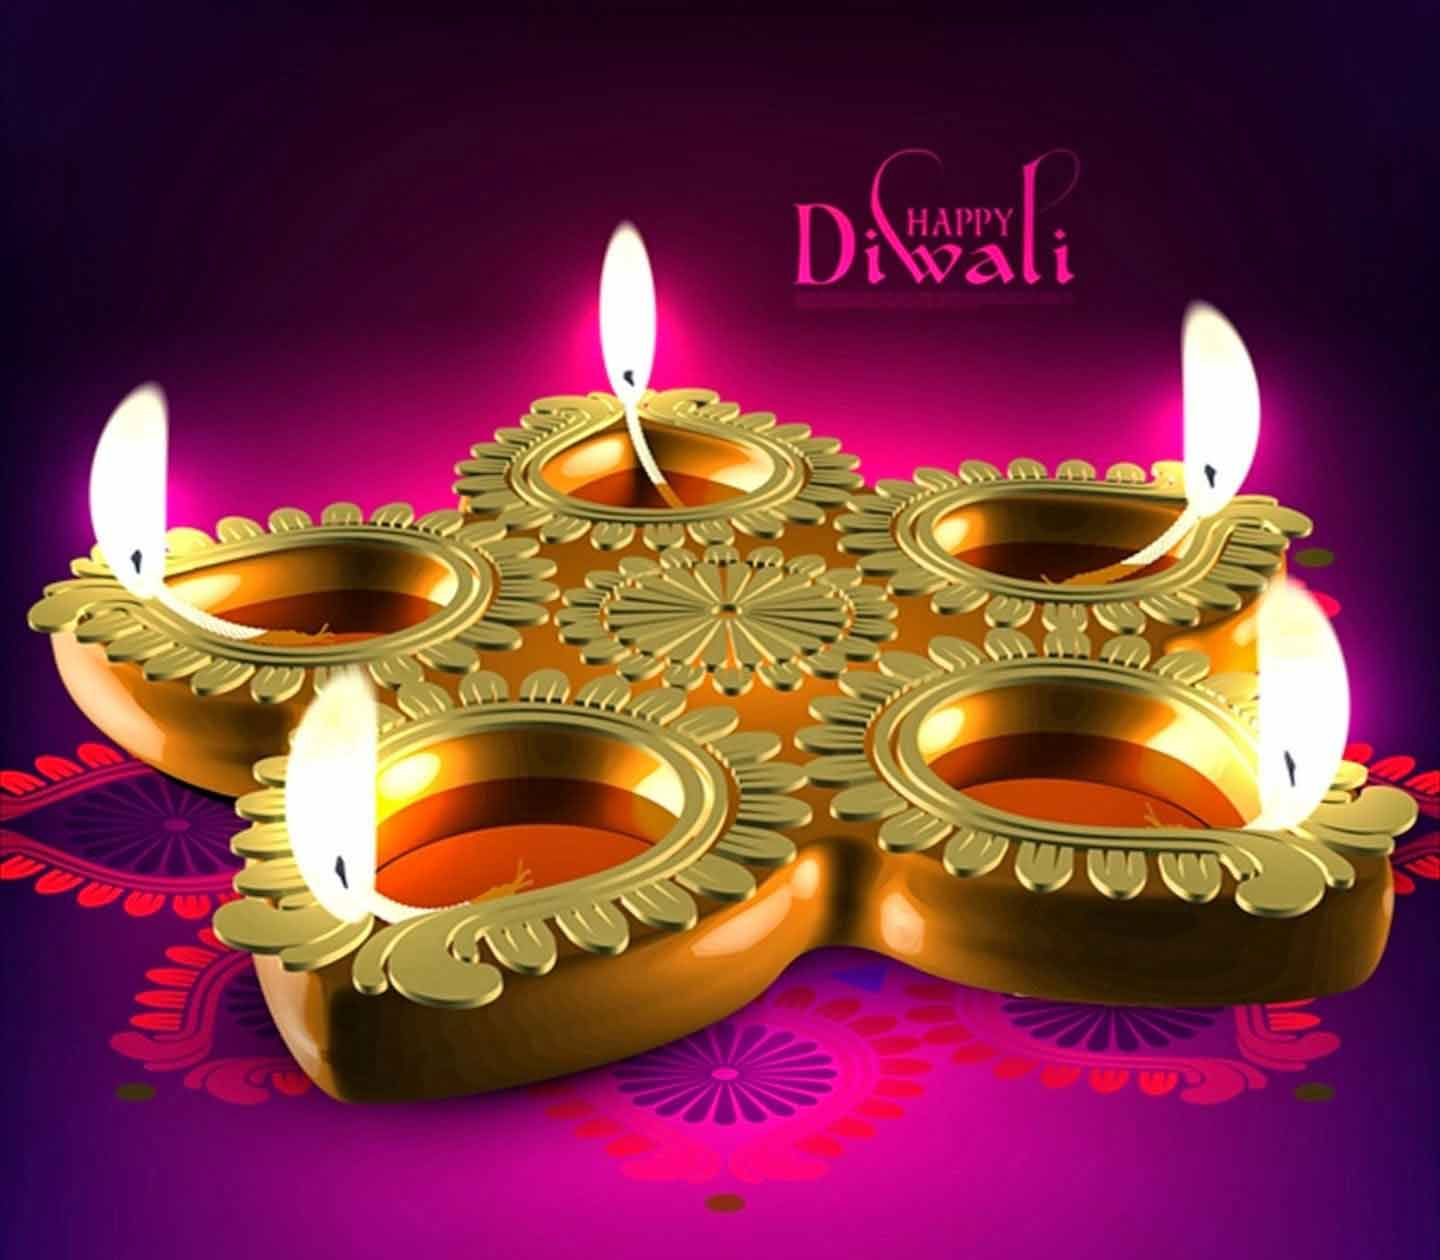 diwali wallpapers - diwali pictures,wallpapers of diwali,wallpaper